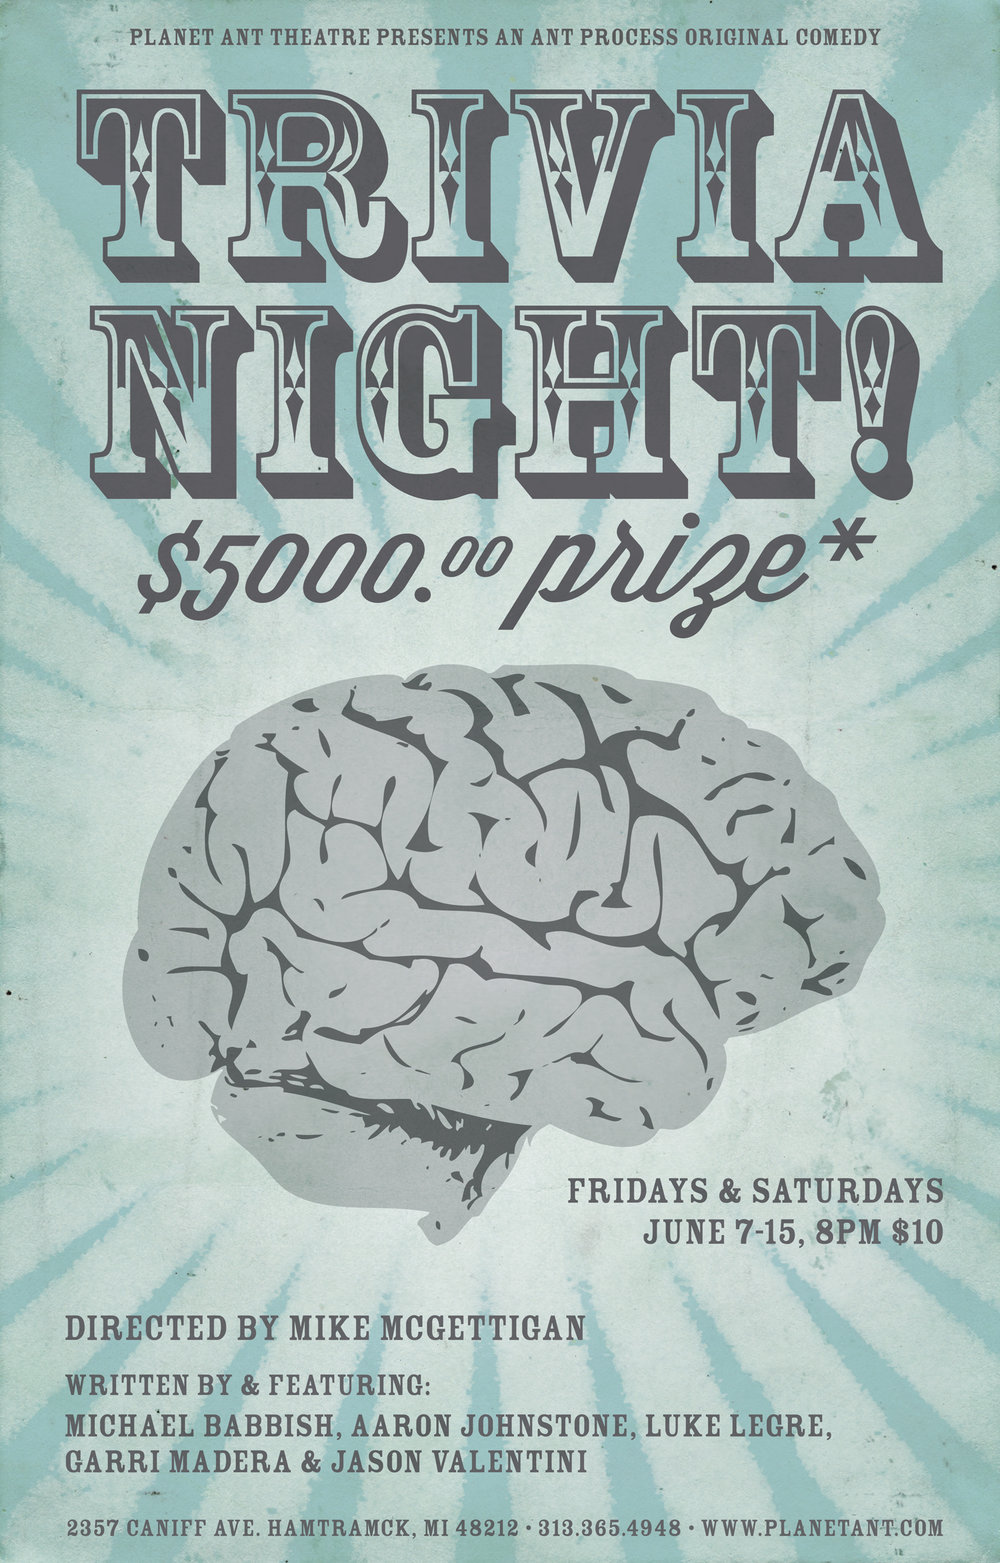 Trivia Night $5000 Prize Poster